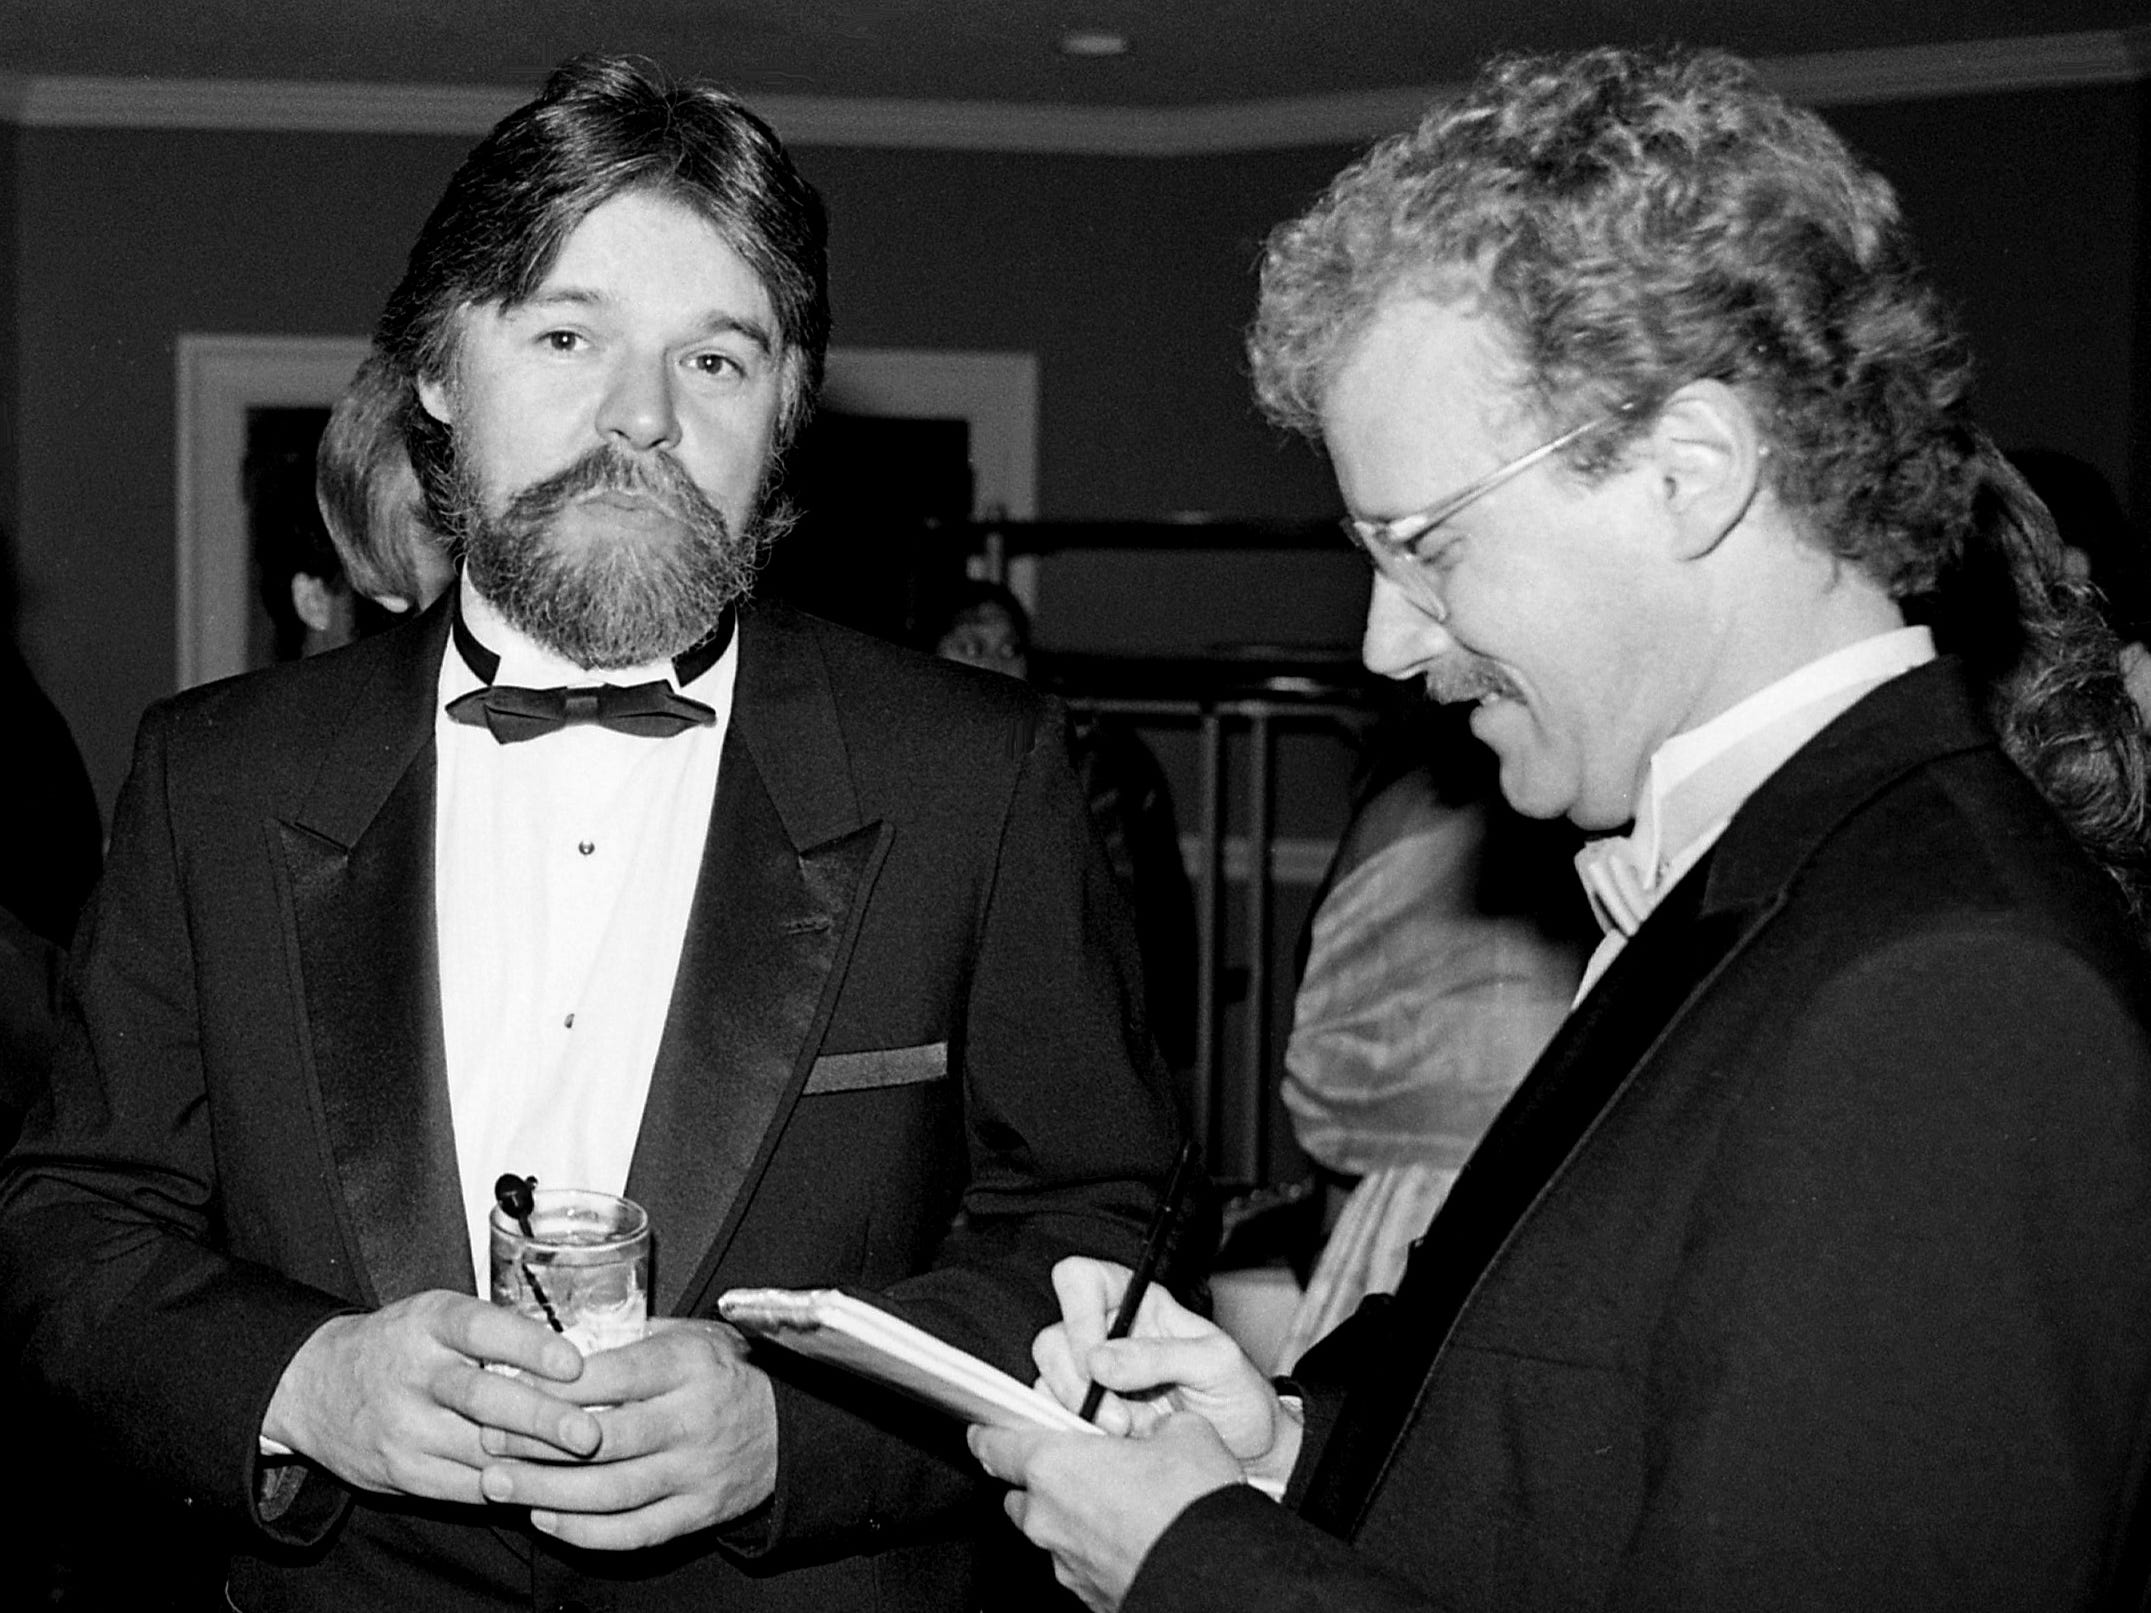 Rock superstar Bob Seger, left, answers questions from Tennessean music reporter Robert K. Oermann during the 22nd annual ASCAP Awards banquet at Opryland Hotel on Oct. 10, 1984.